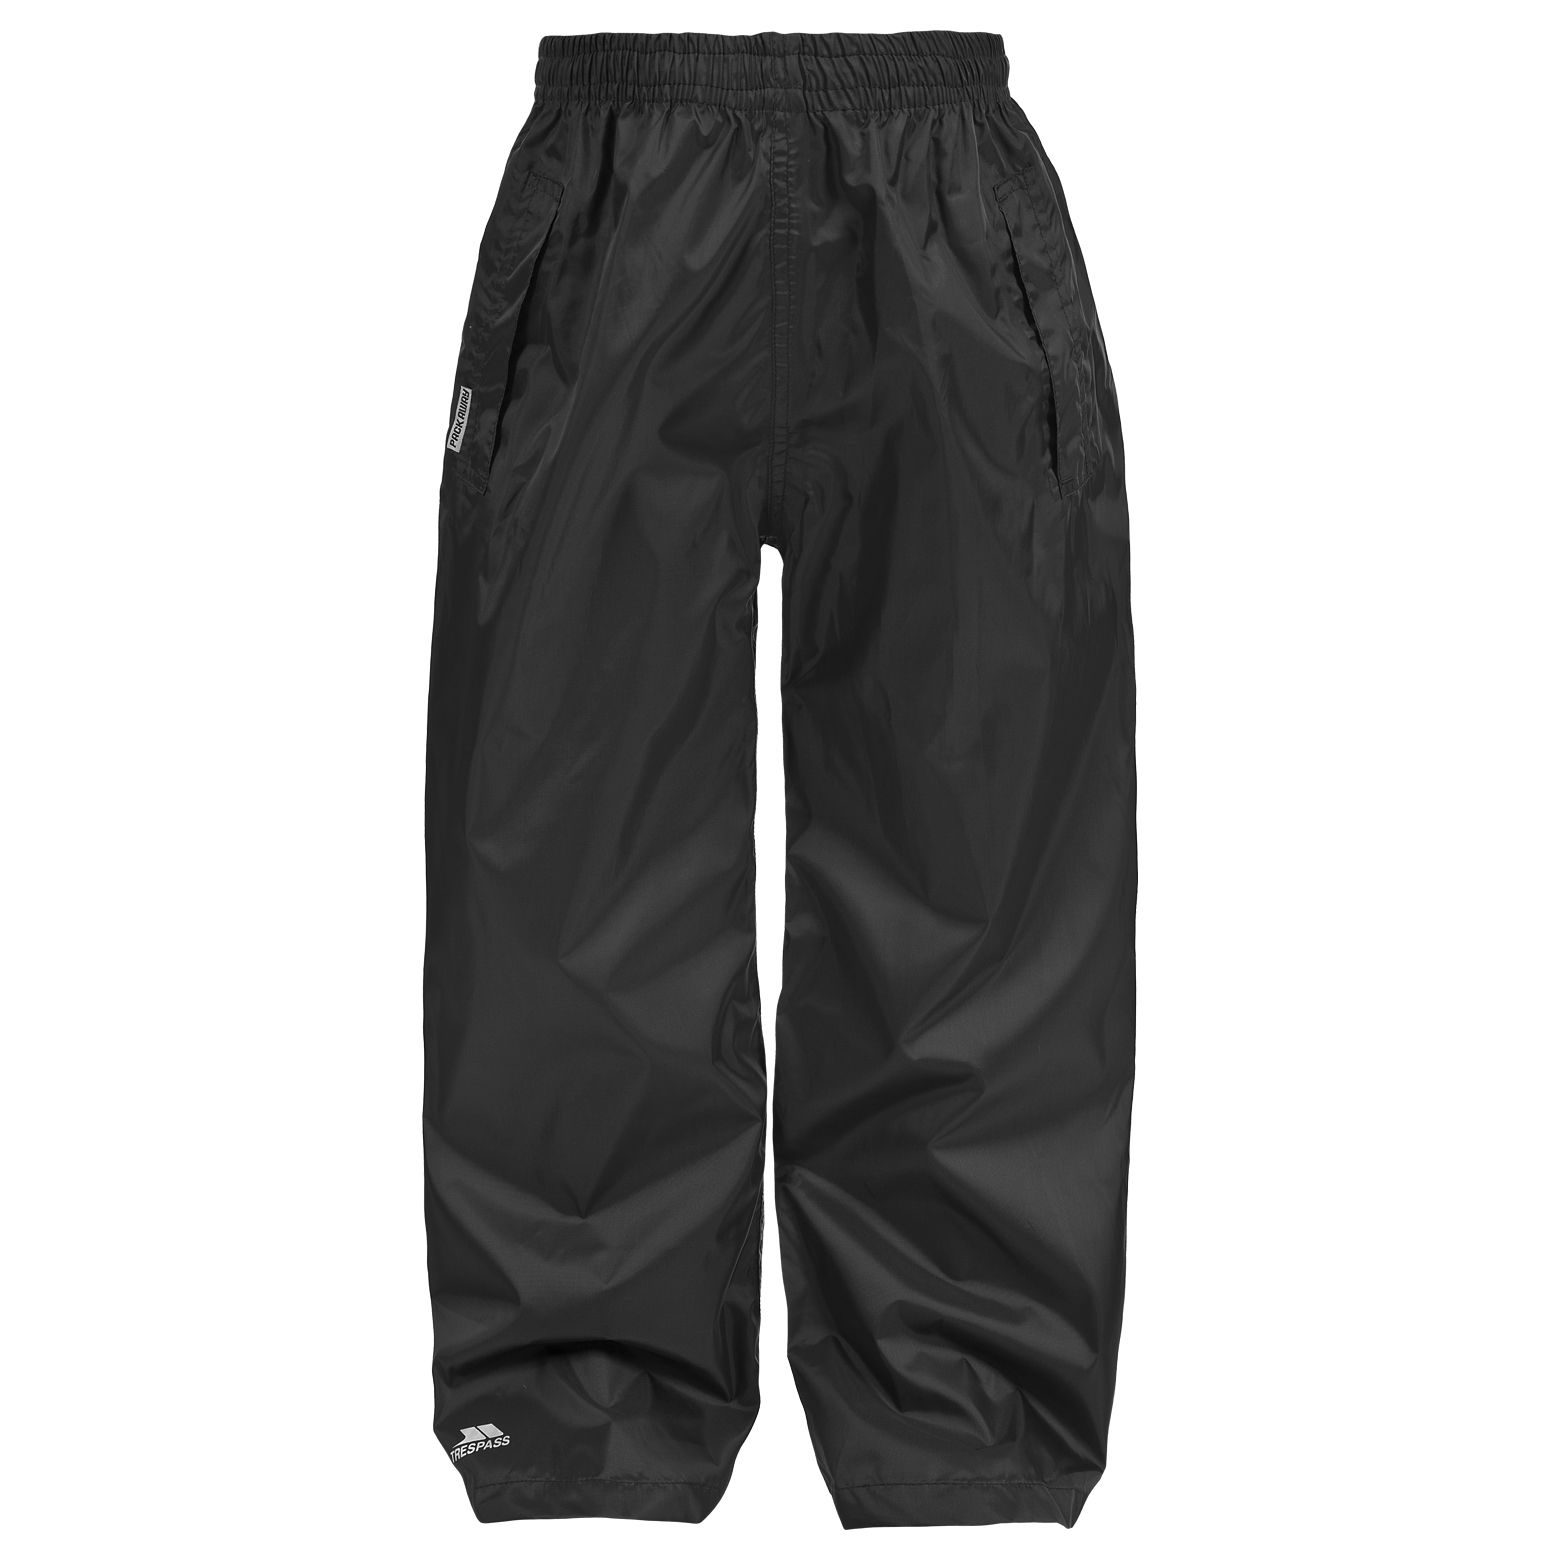 Pantalon Coupe Vent: Trespass PACKUP Pantalon Pliable Imperméable Coupe-vent